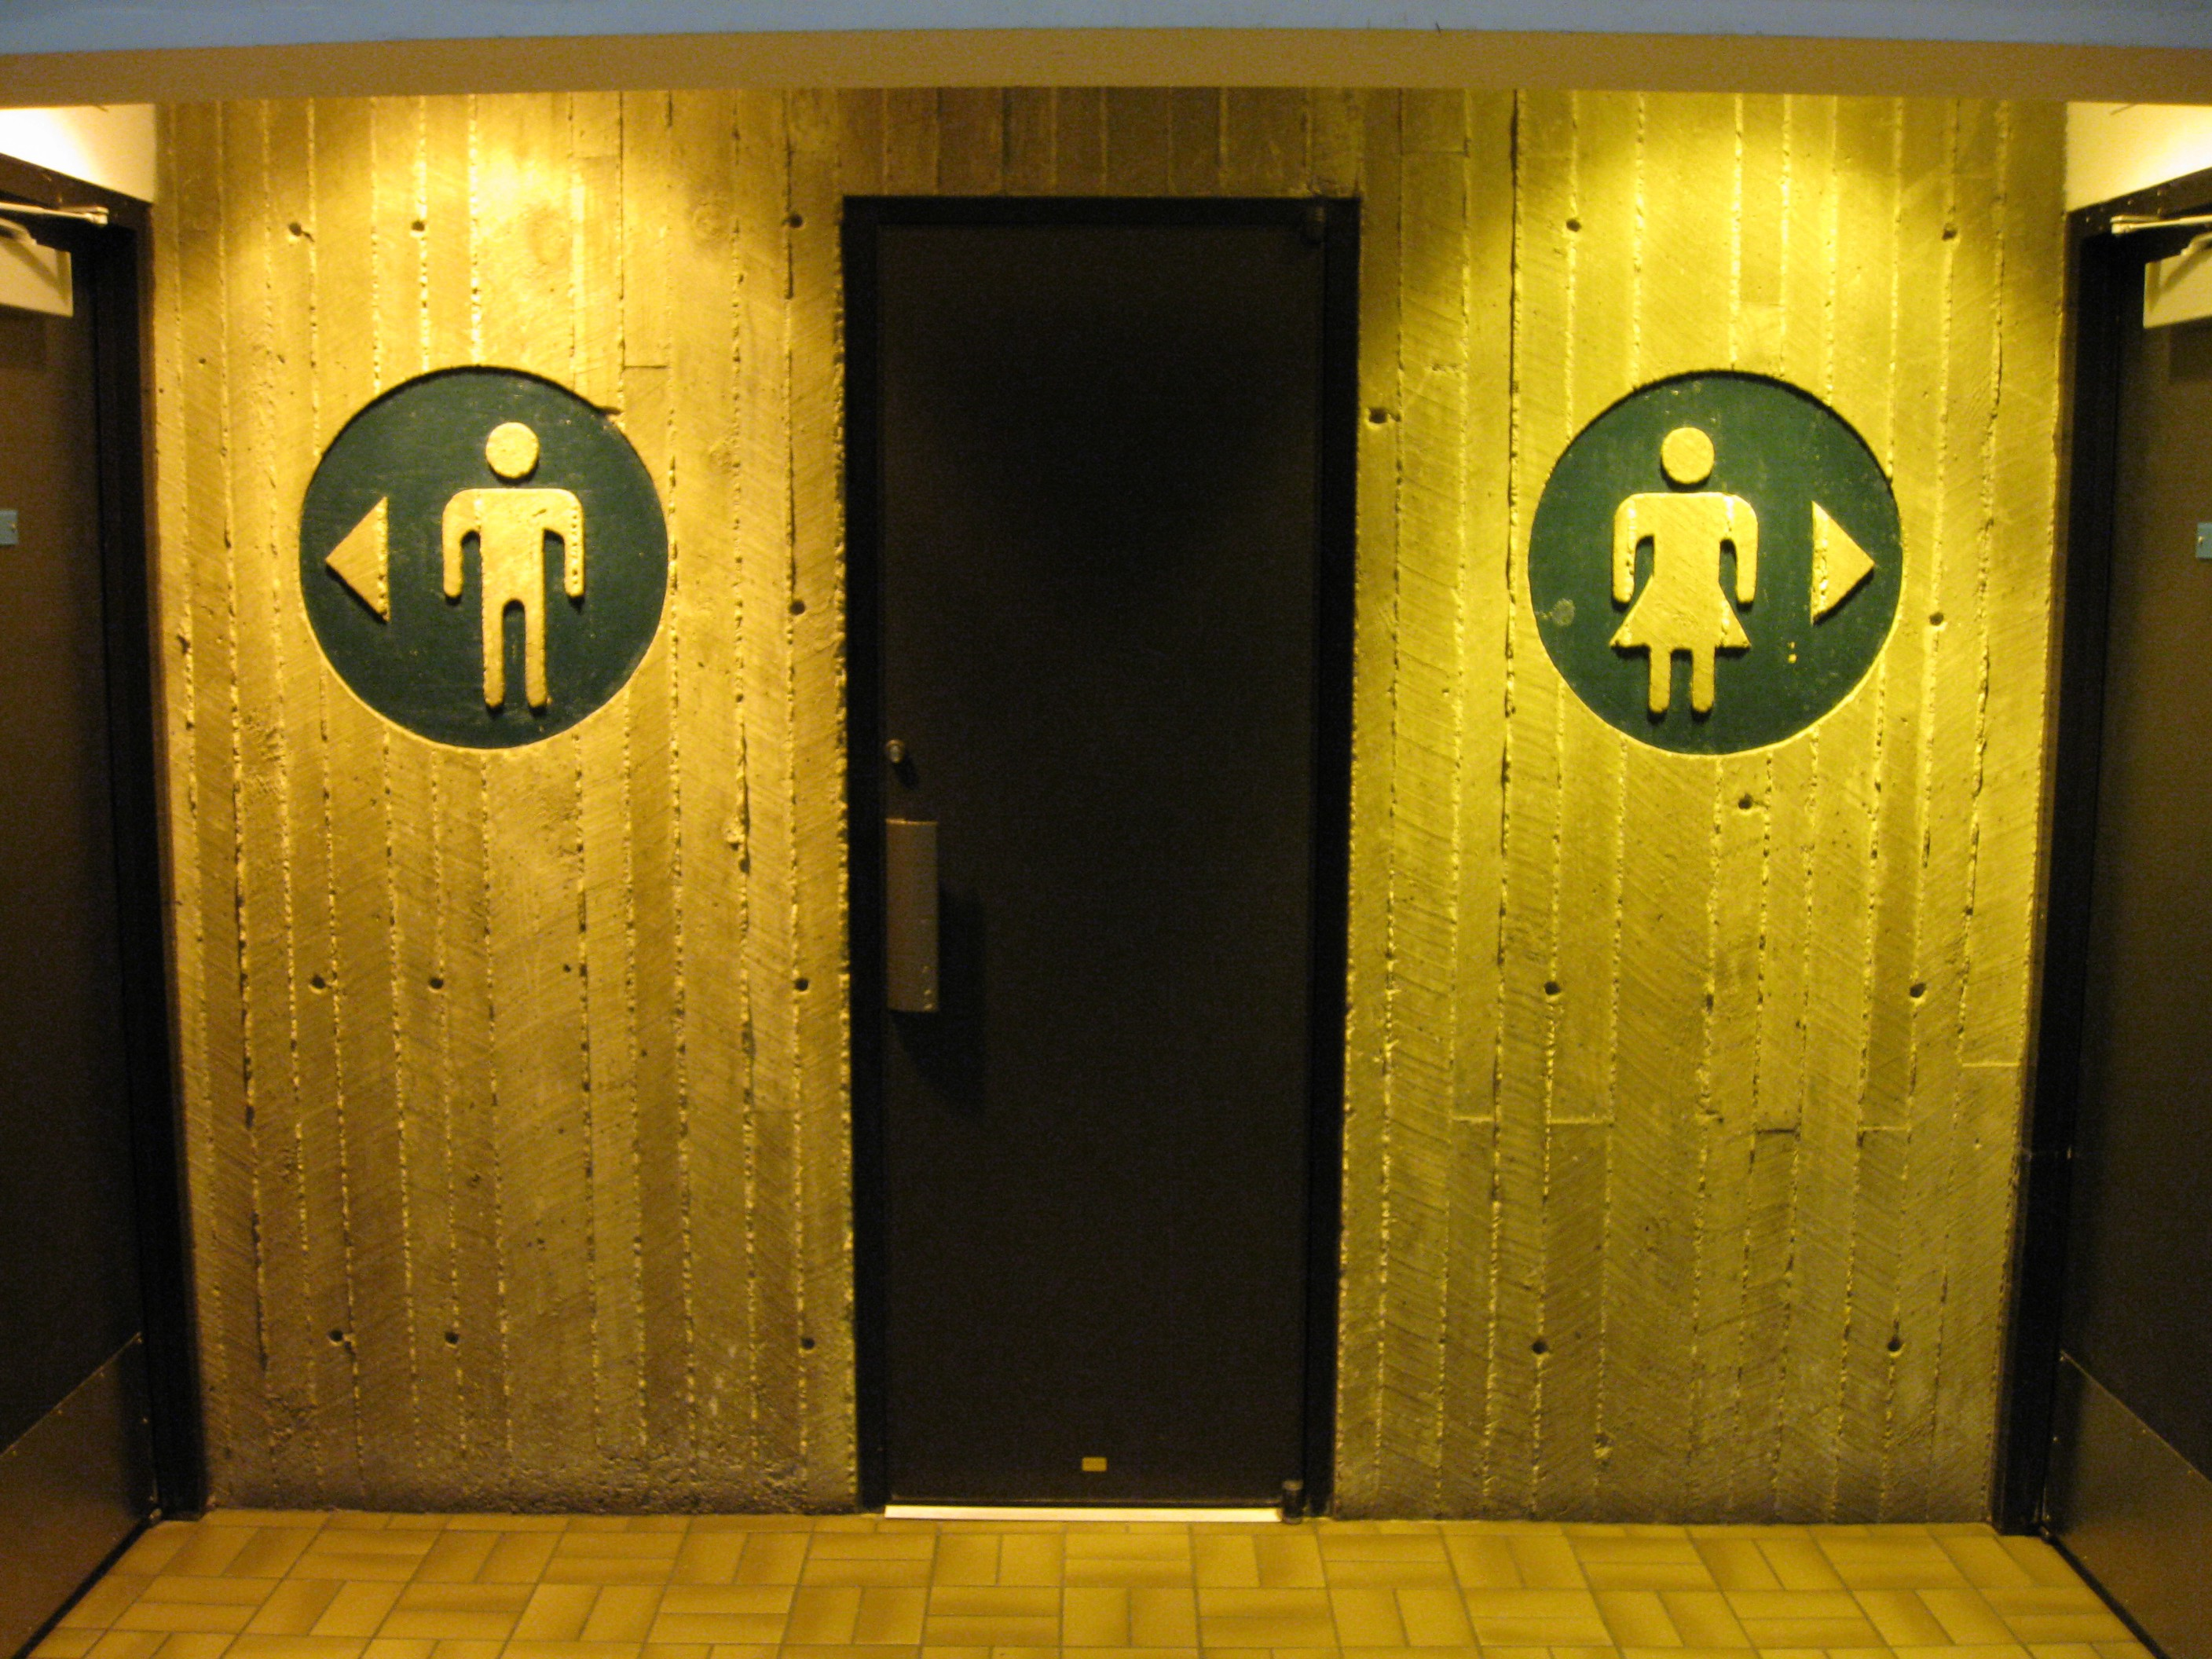 Source: https://commons.wikimedia.org/wiki/File:Restroom_signs.jpg